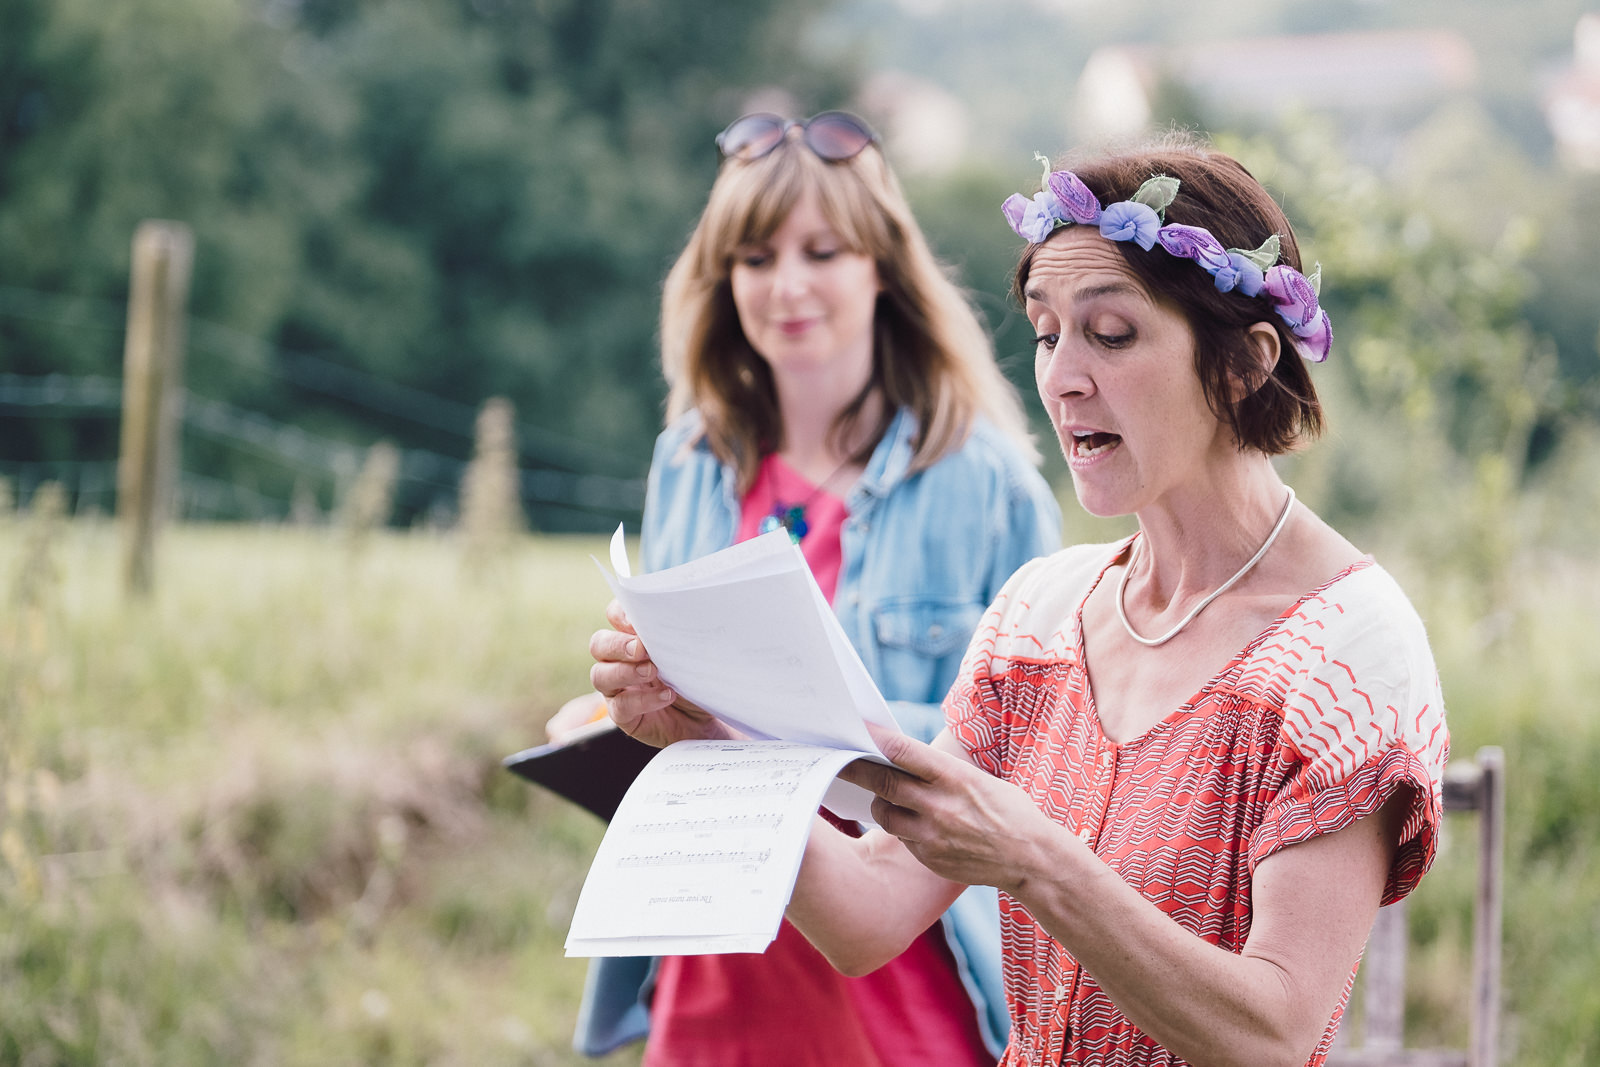 Corporate marketing photography with outdoor summer production by the Kilter Theatre at Bath City Farm